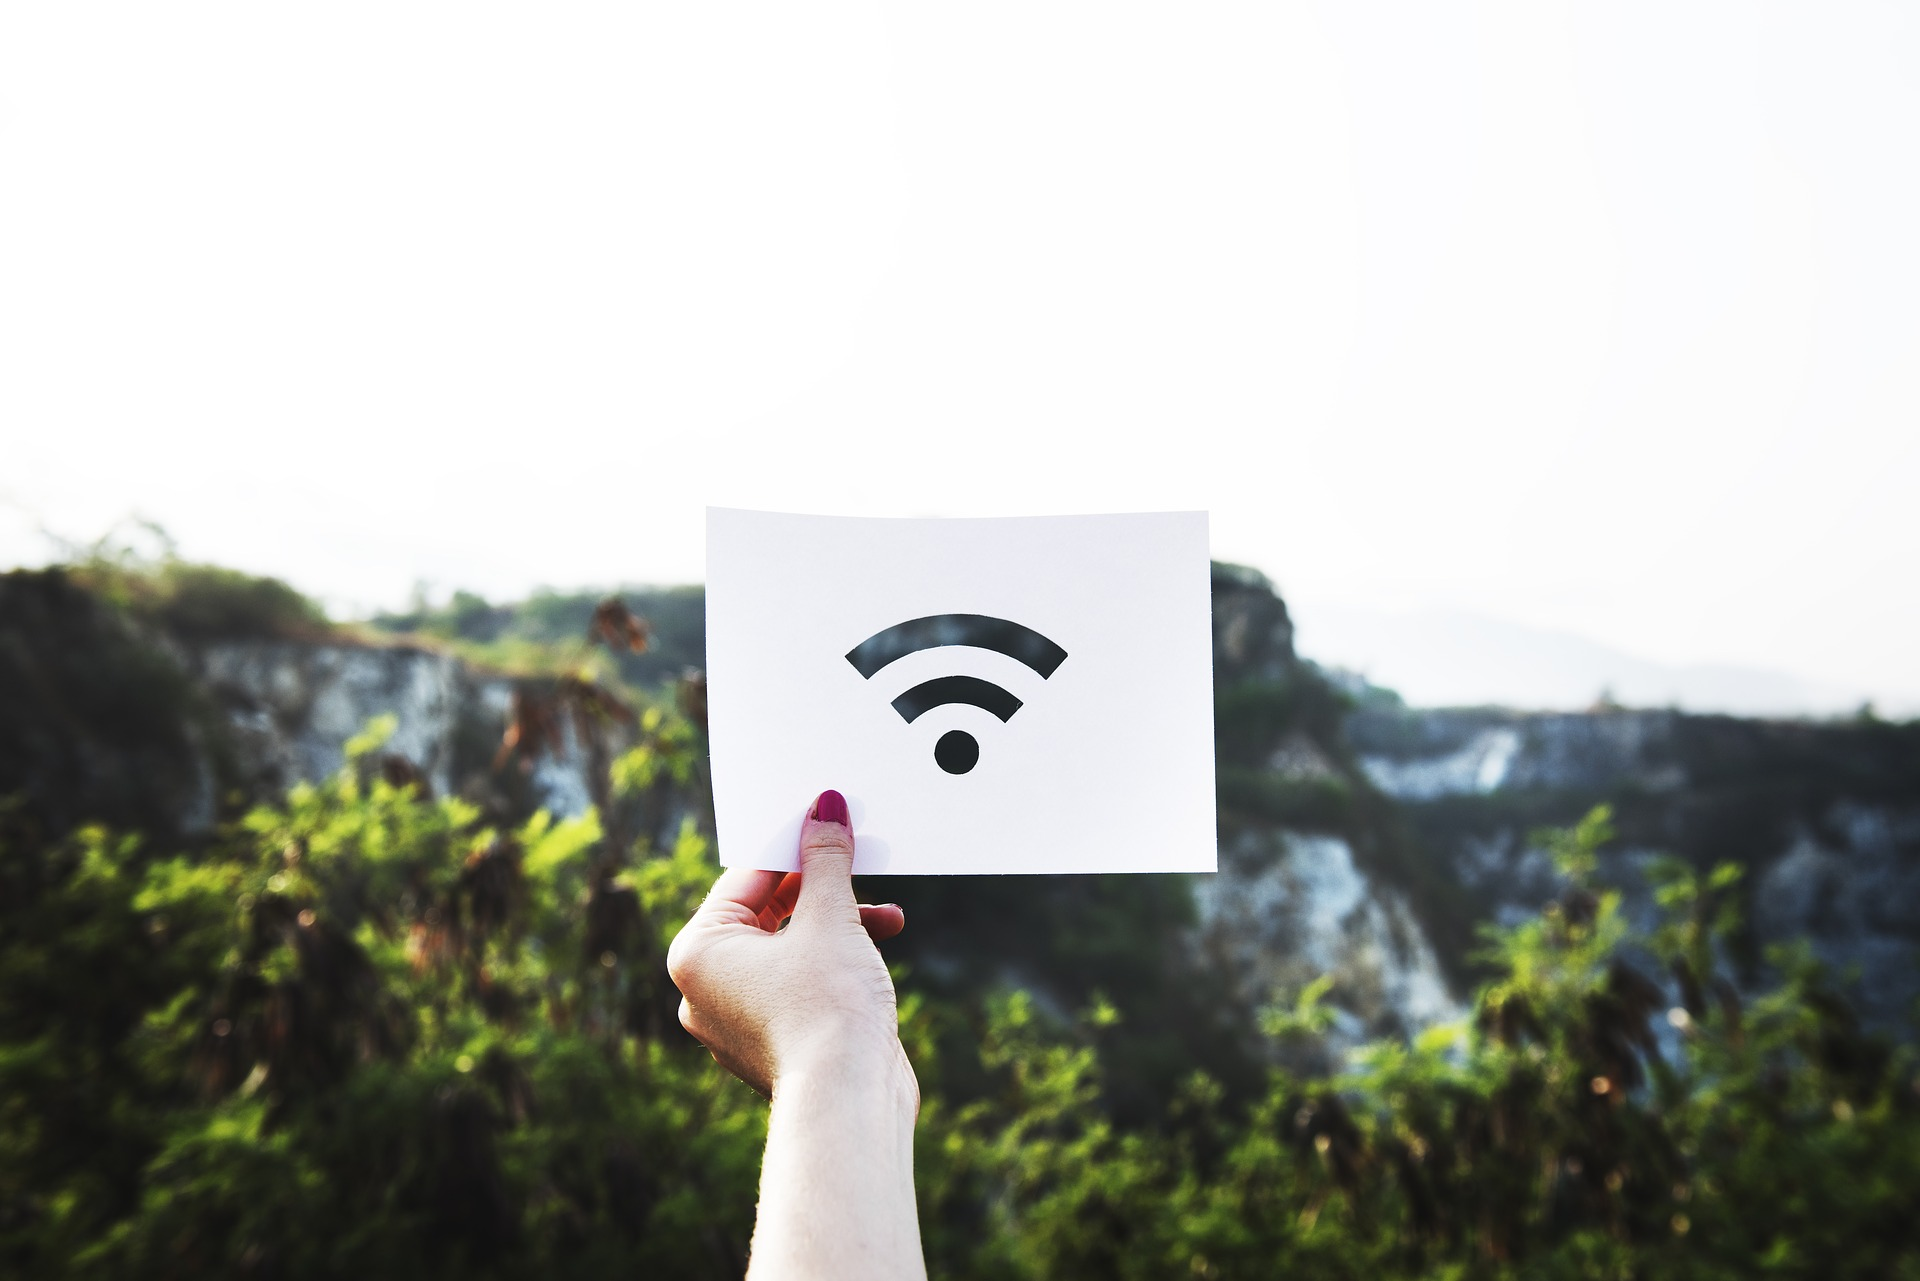 What You Need to Know about Using Wi-Fi vs. Cellular Data